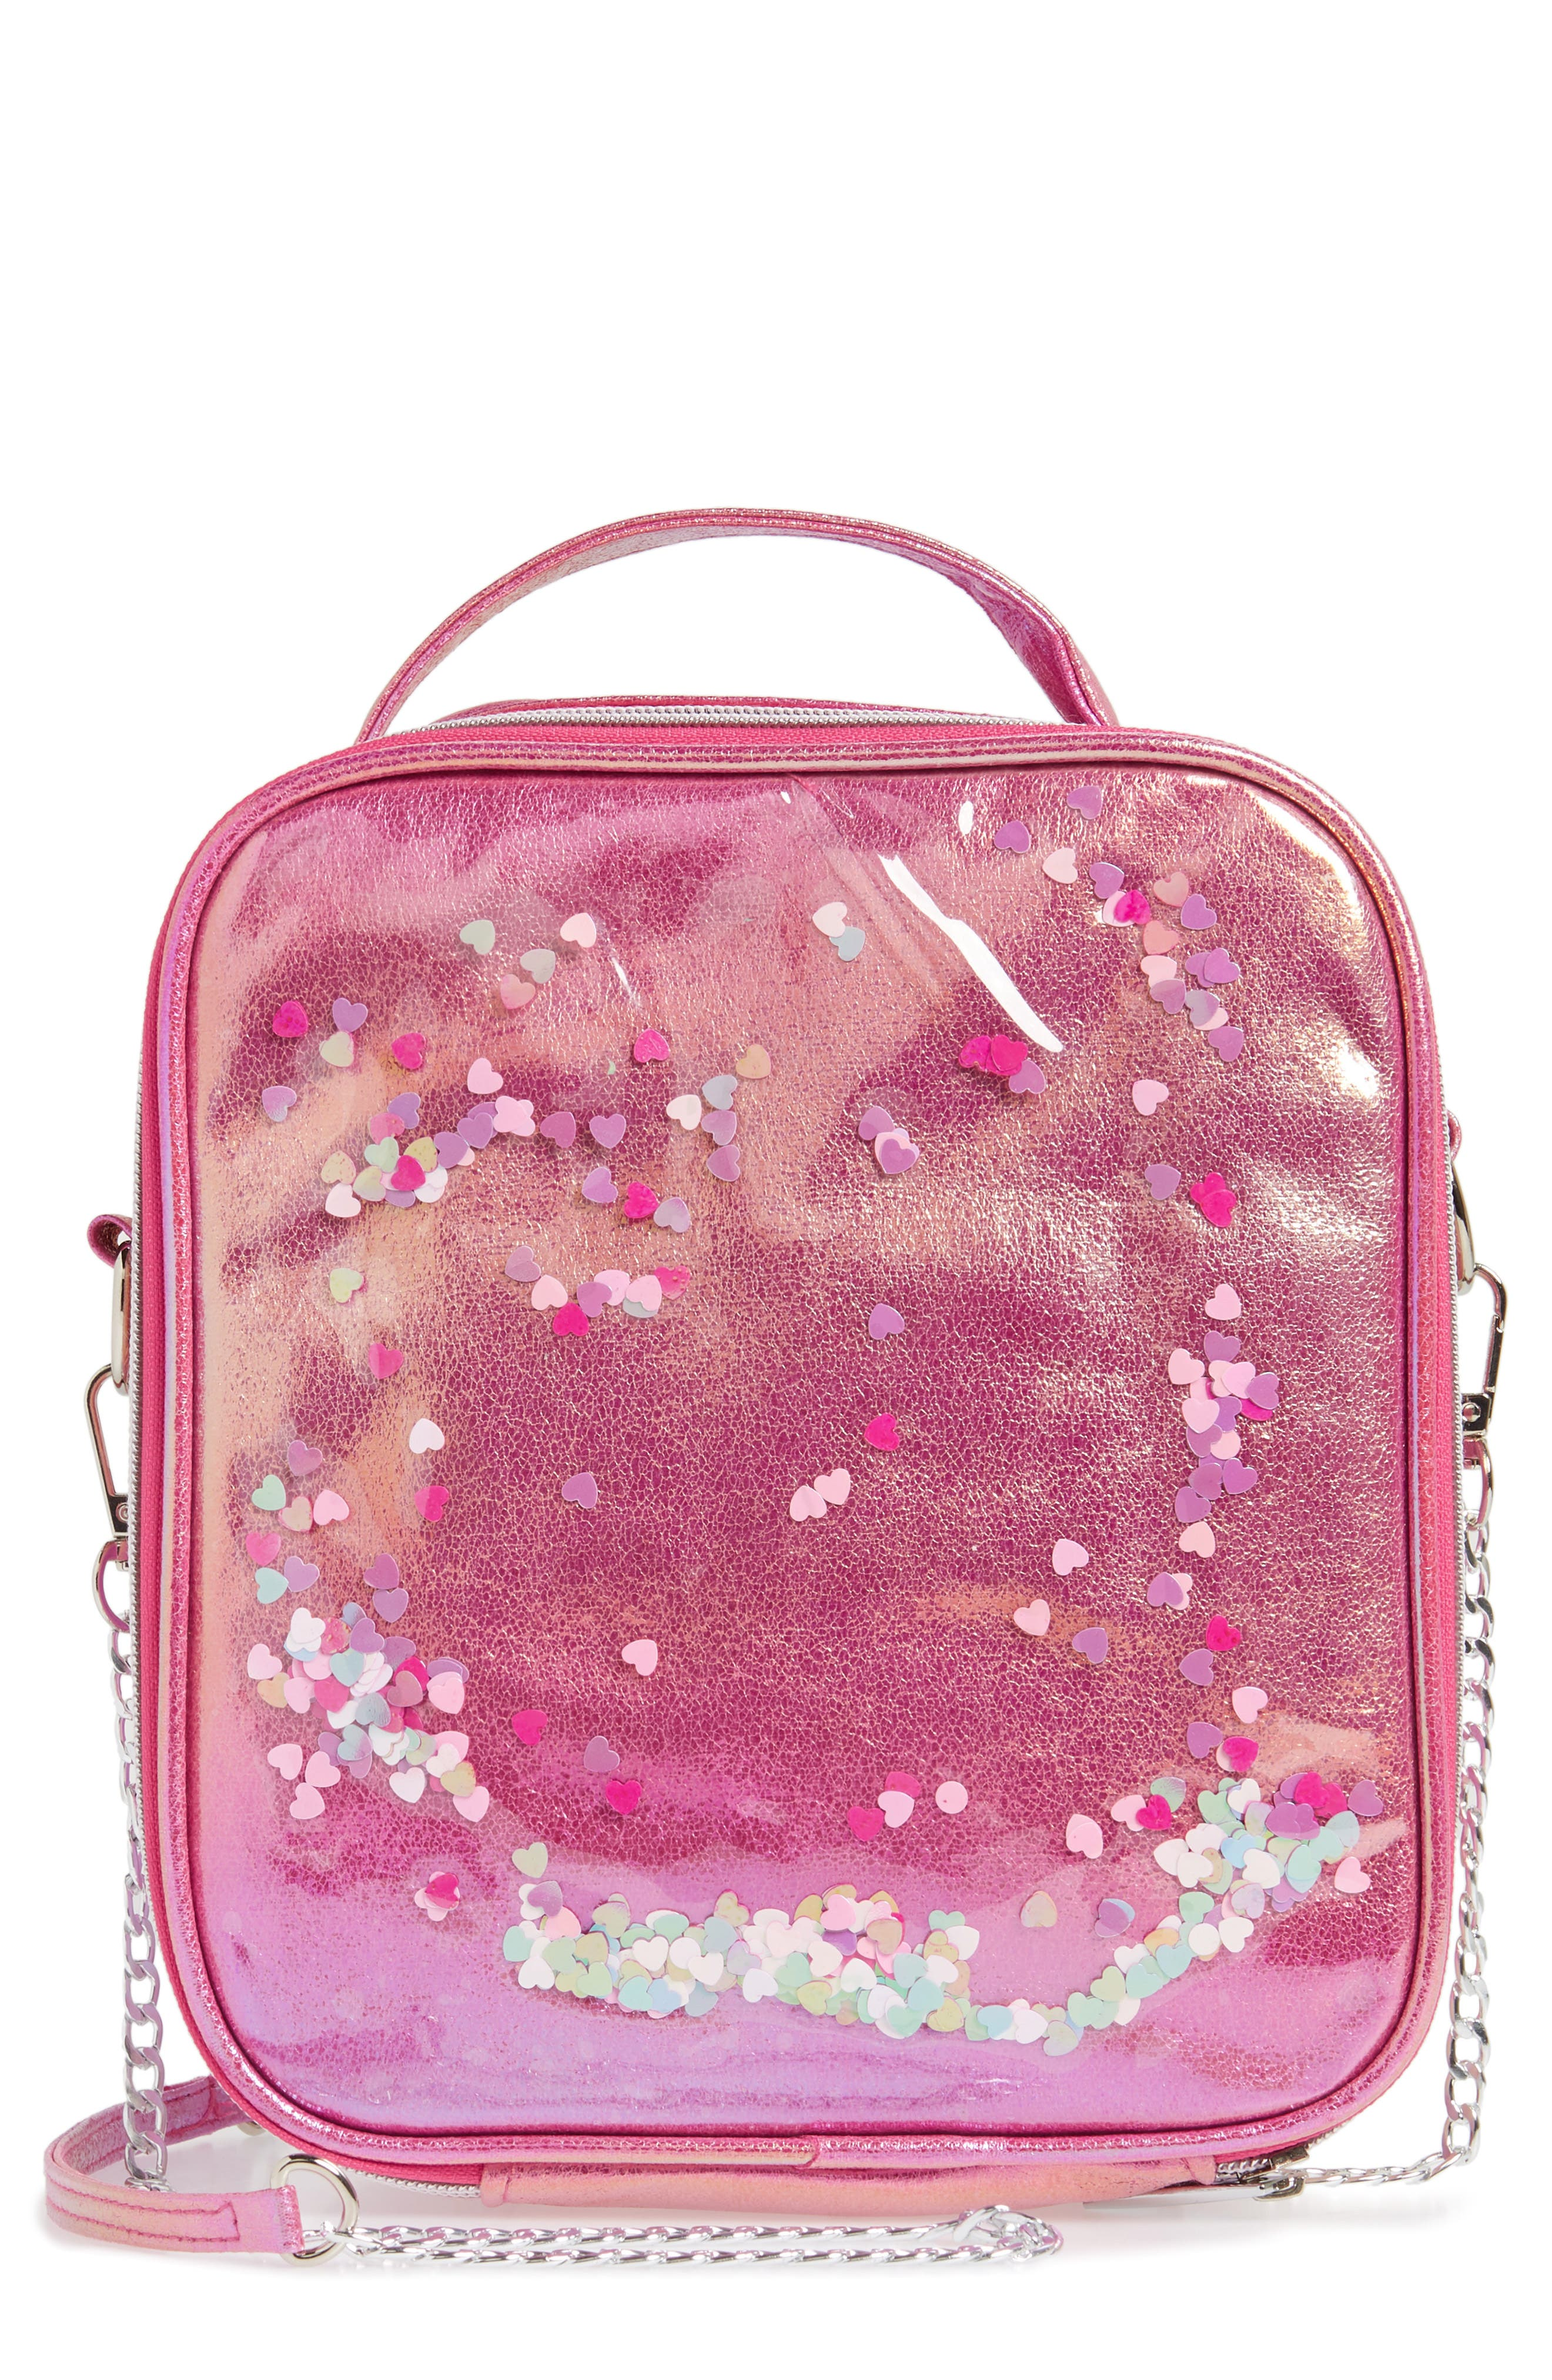 Heart Confetti Lunchbox,                             Main thumbnail 1, color,                             650